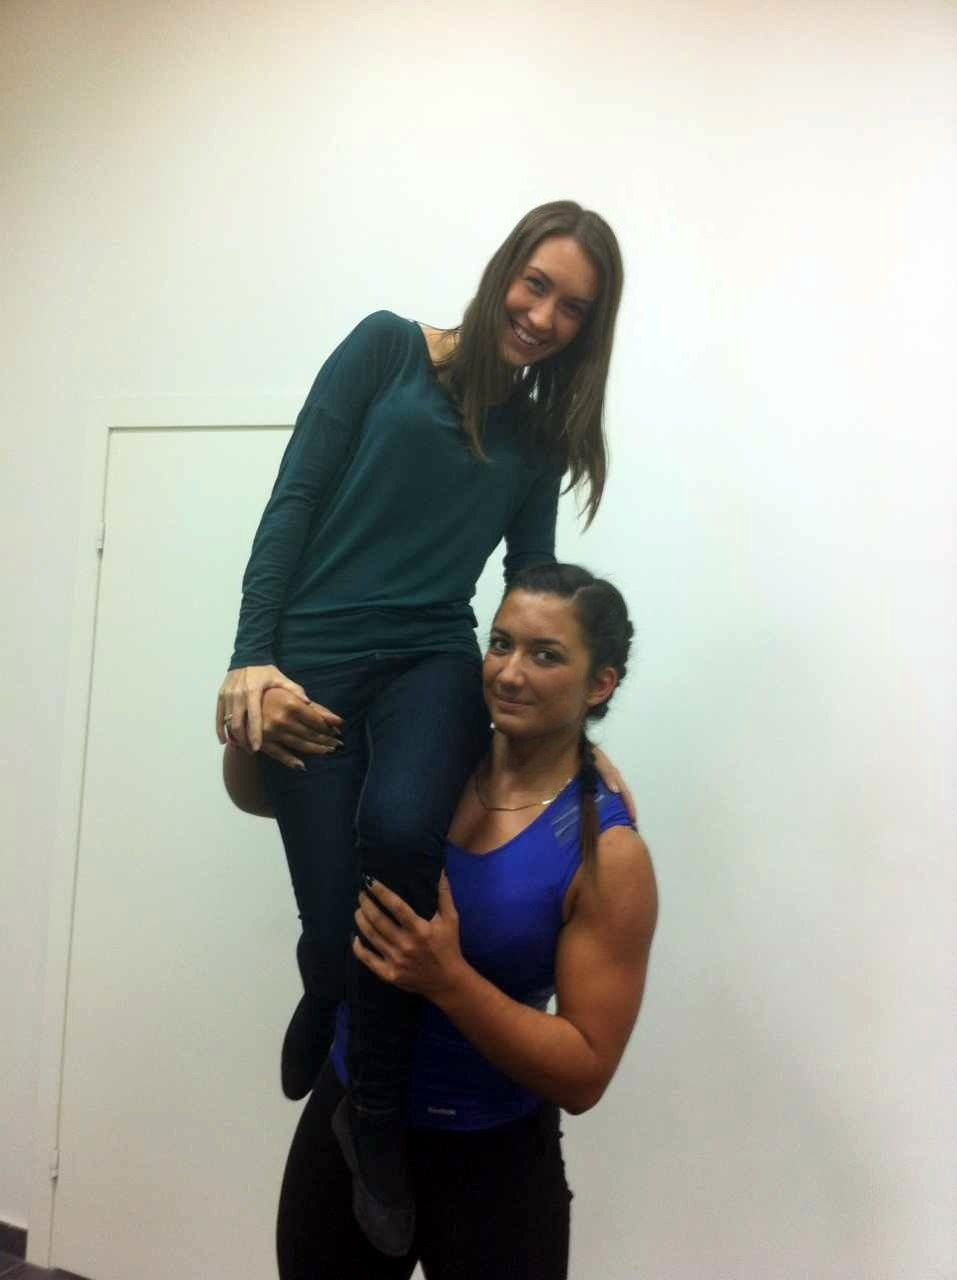 Strong female lift carry